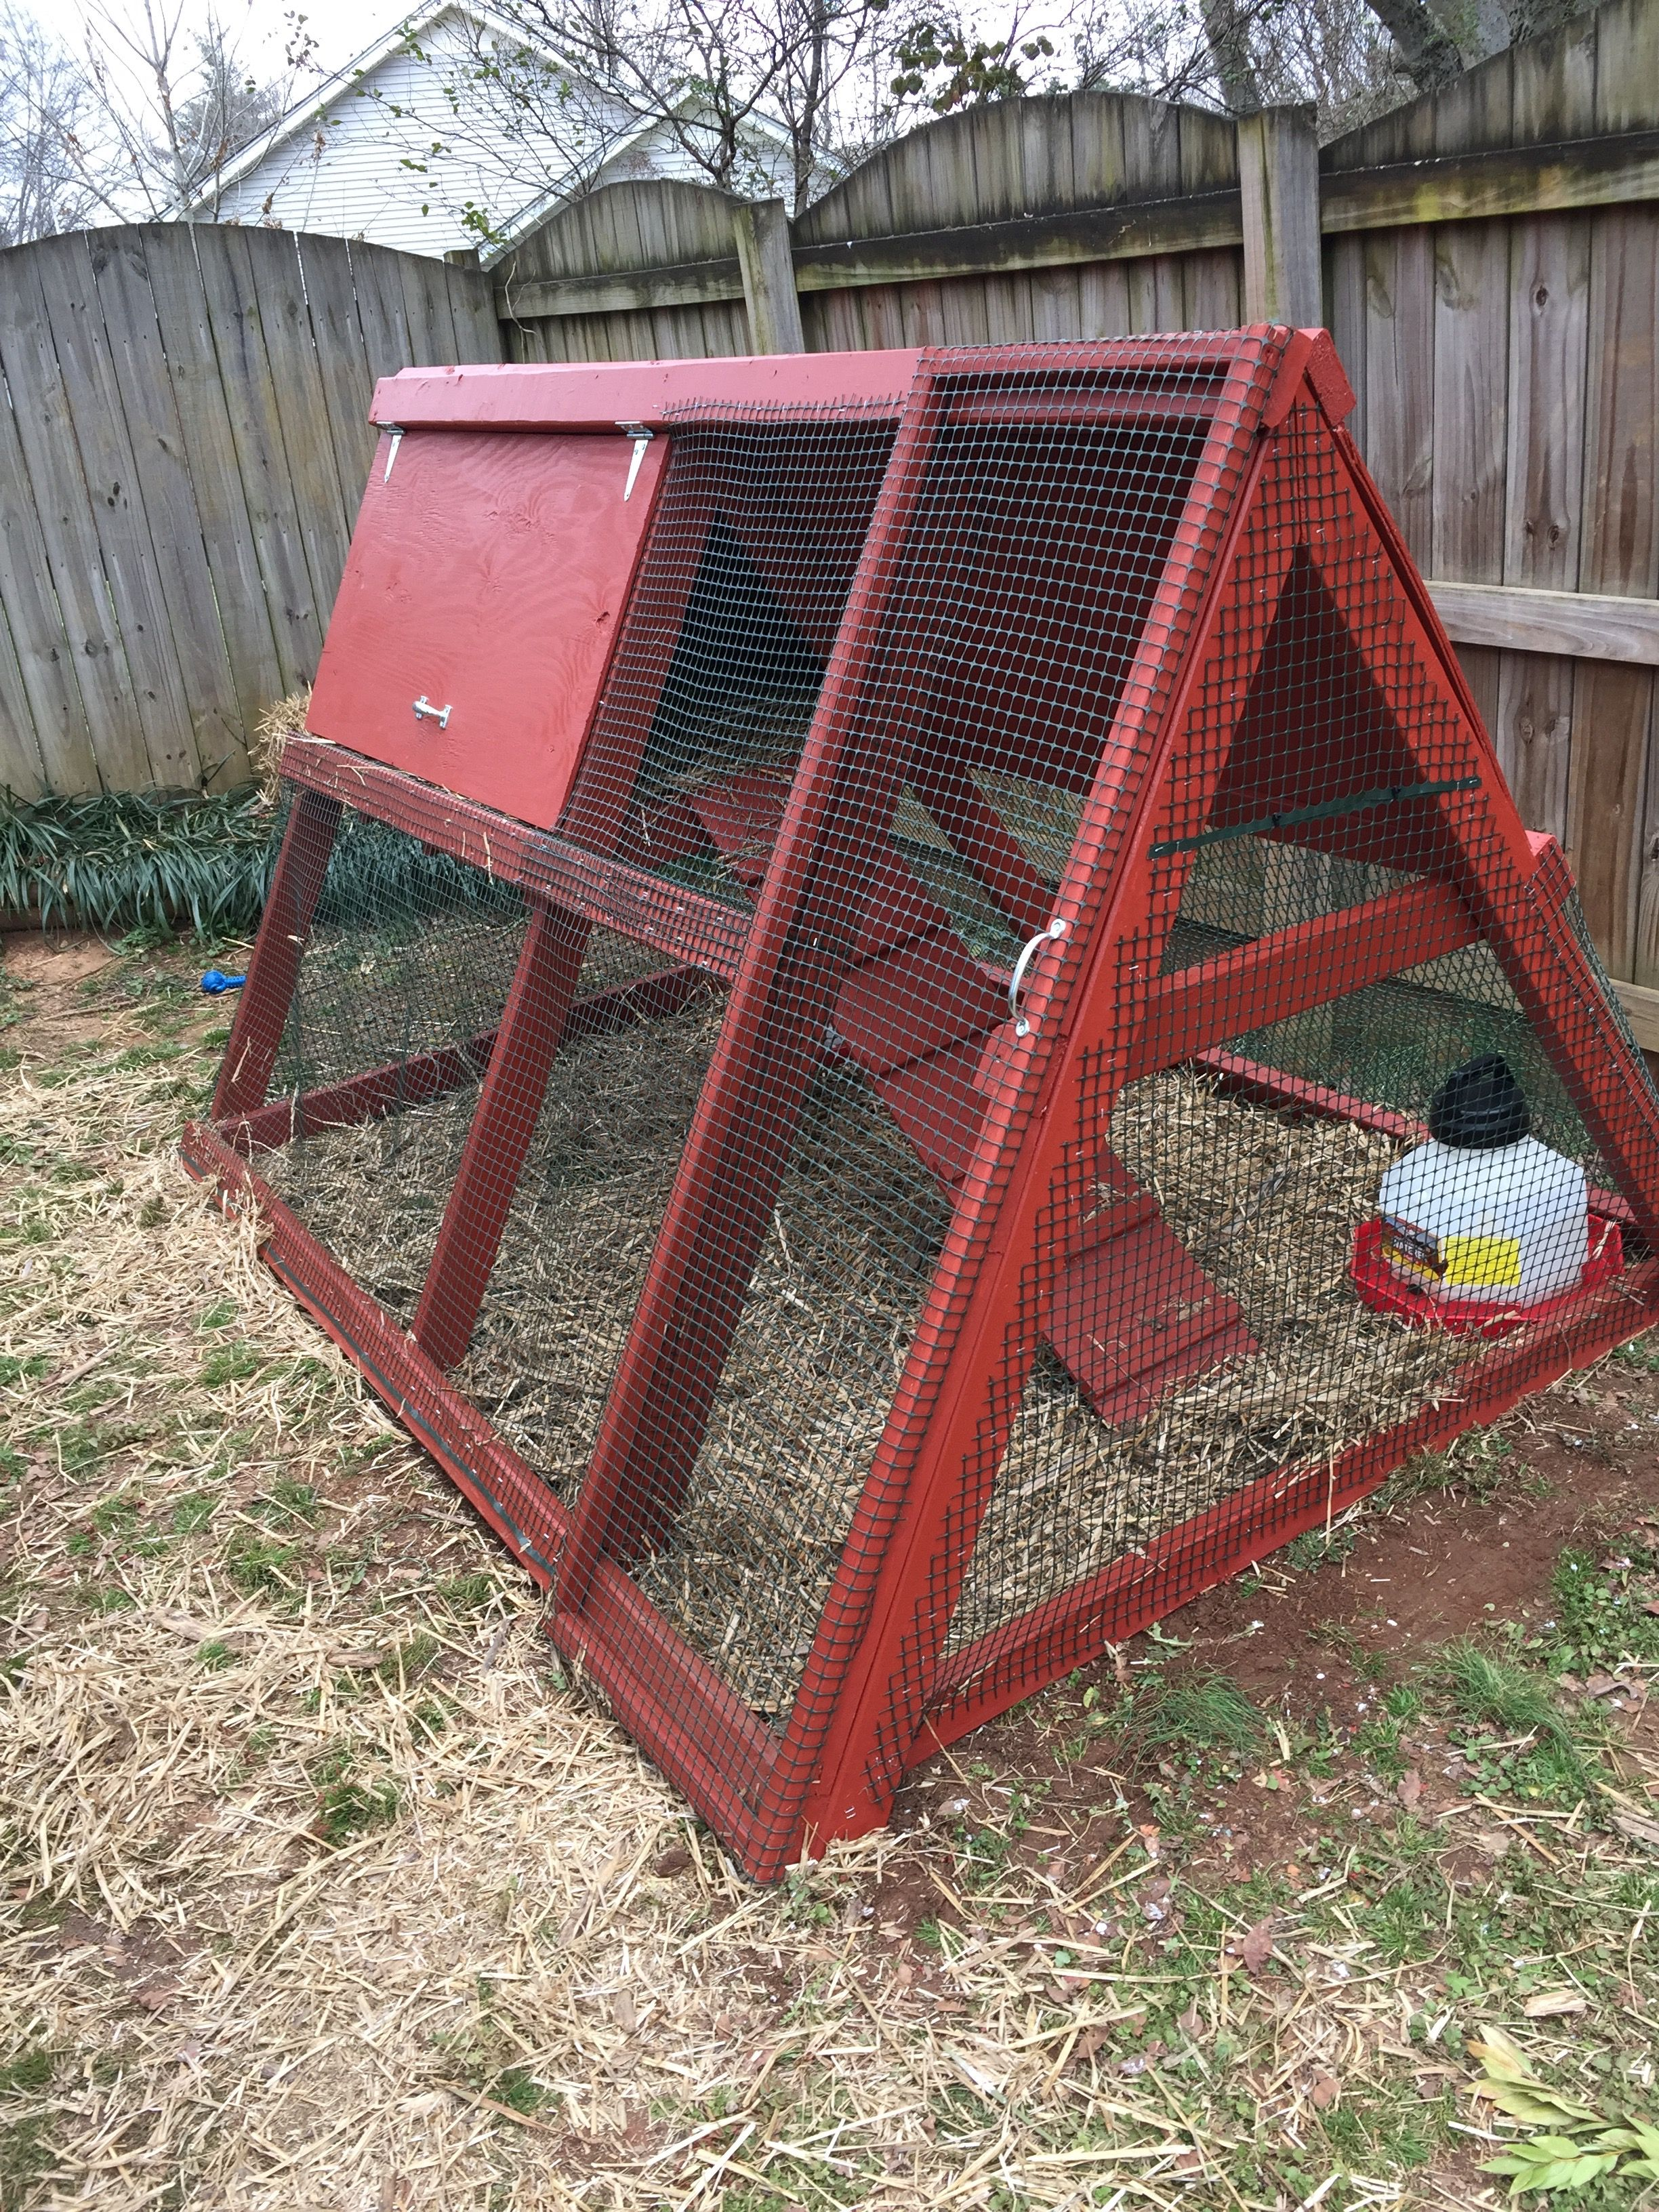 A Frame Chicken Coop Do It Yourself Home Projects From Ana